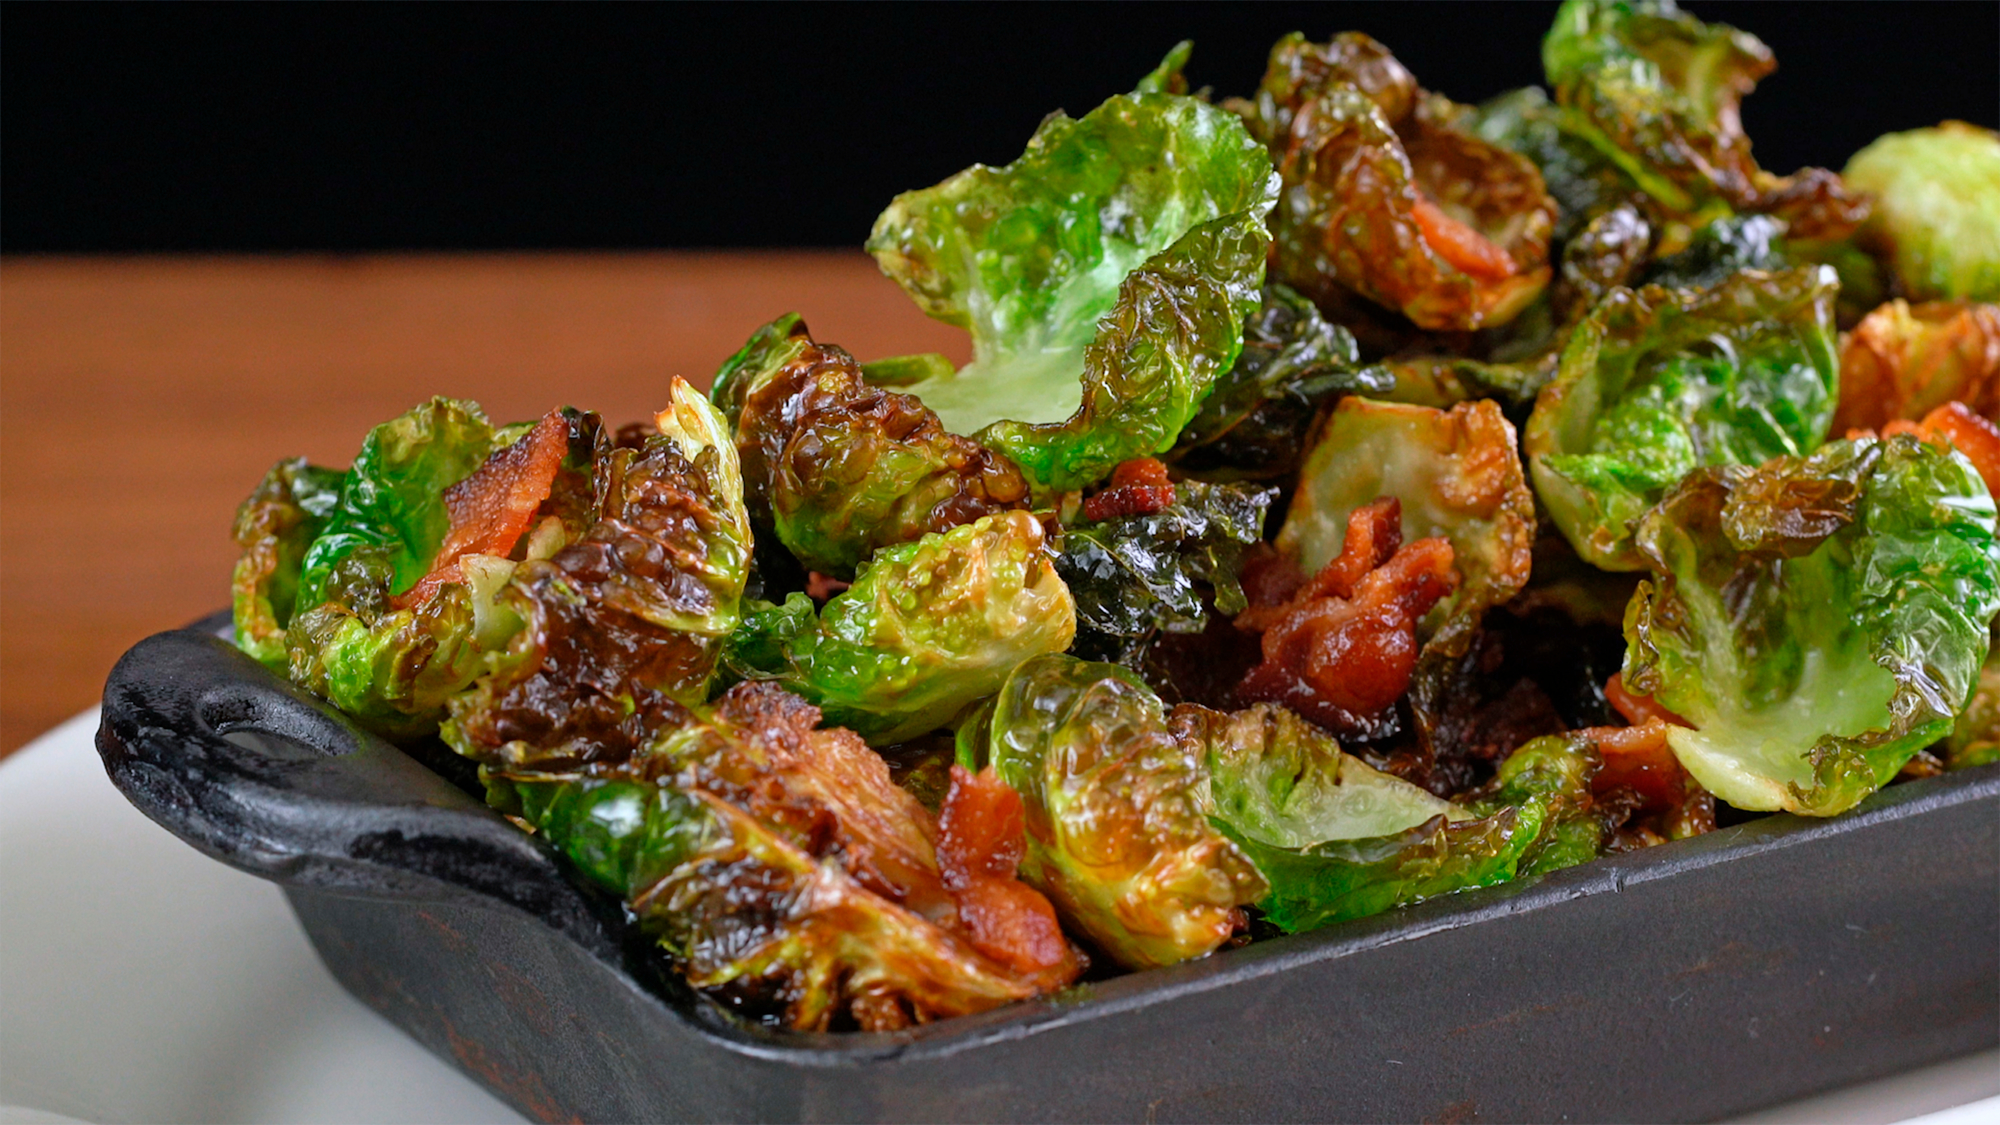 Crispy Brussels Sprouts with Bacon and Maple from THe Cheesecake Factory